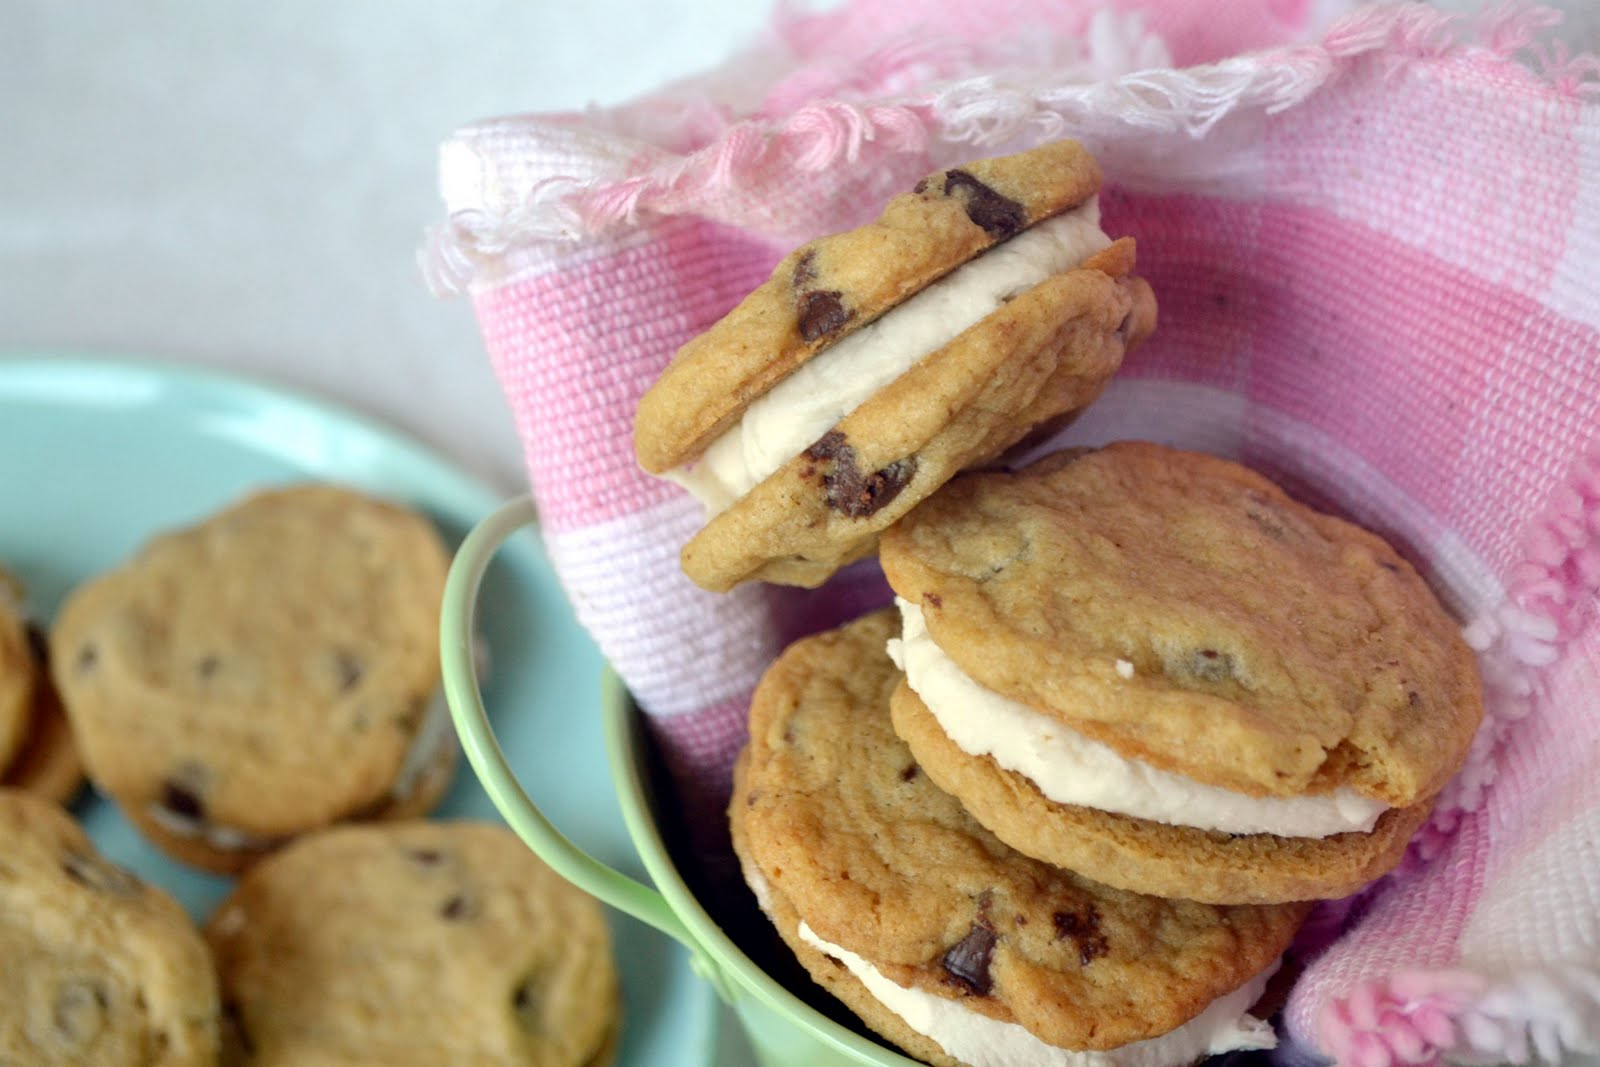 ... Katie's Baking: Chocolate Chip Cookie Sandwiches with Cream Filling